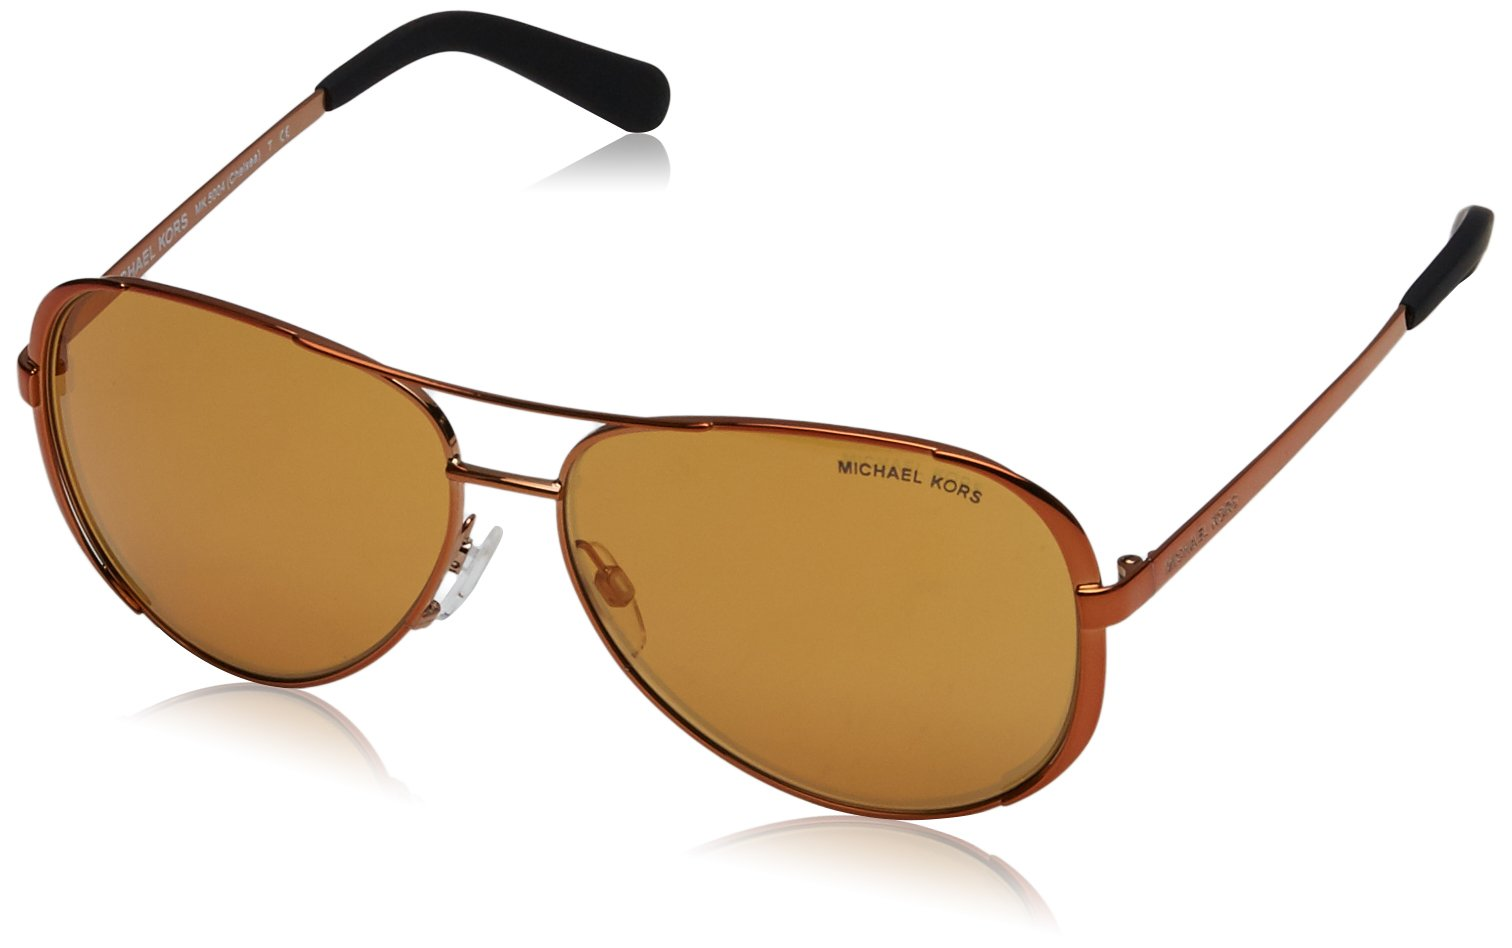 Michael Kors MK5004 Chelsea Sunglasses, Copper